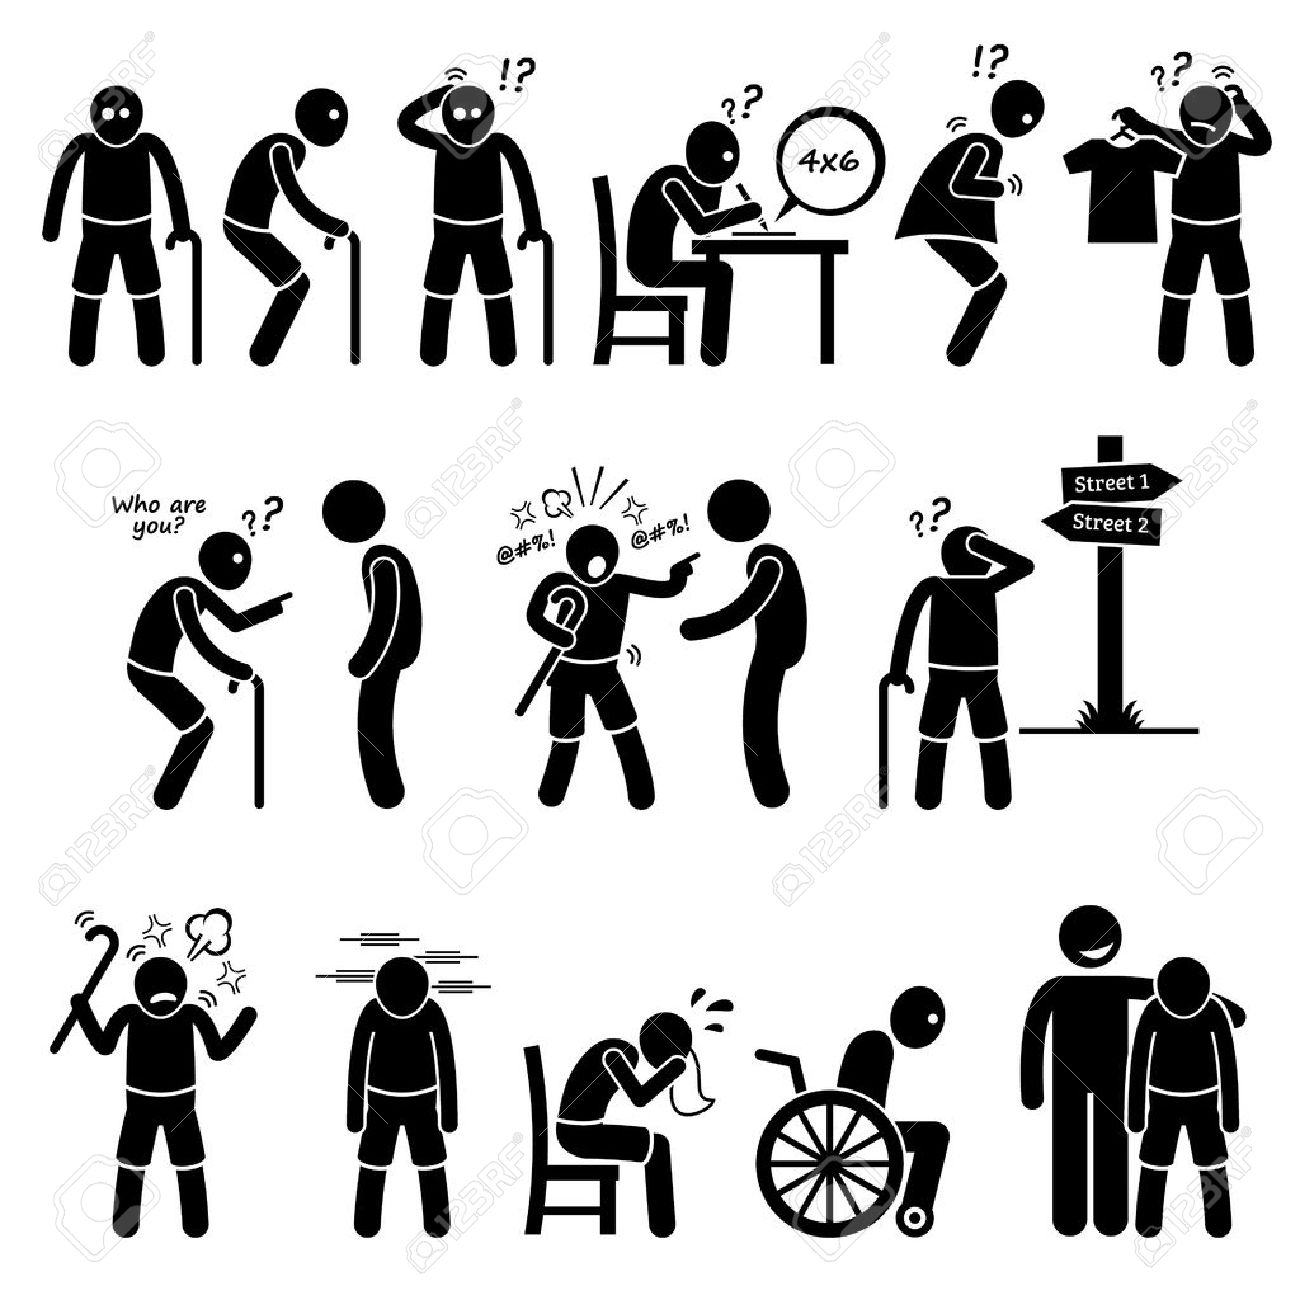 Alzheimer and Dementia Elderly Old Man Stick Figure Pictogram Icons - 52340746